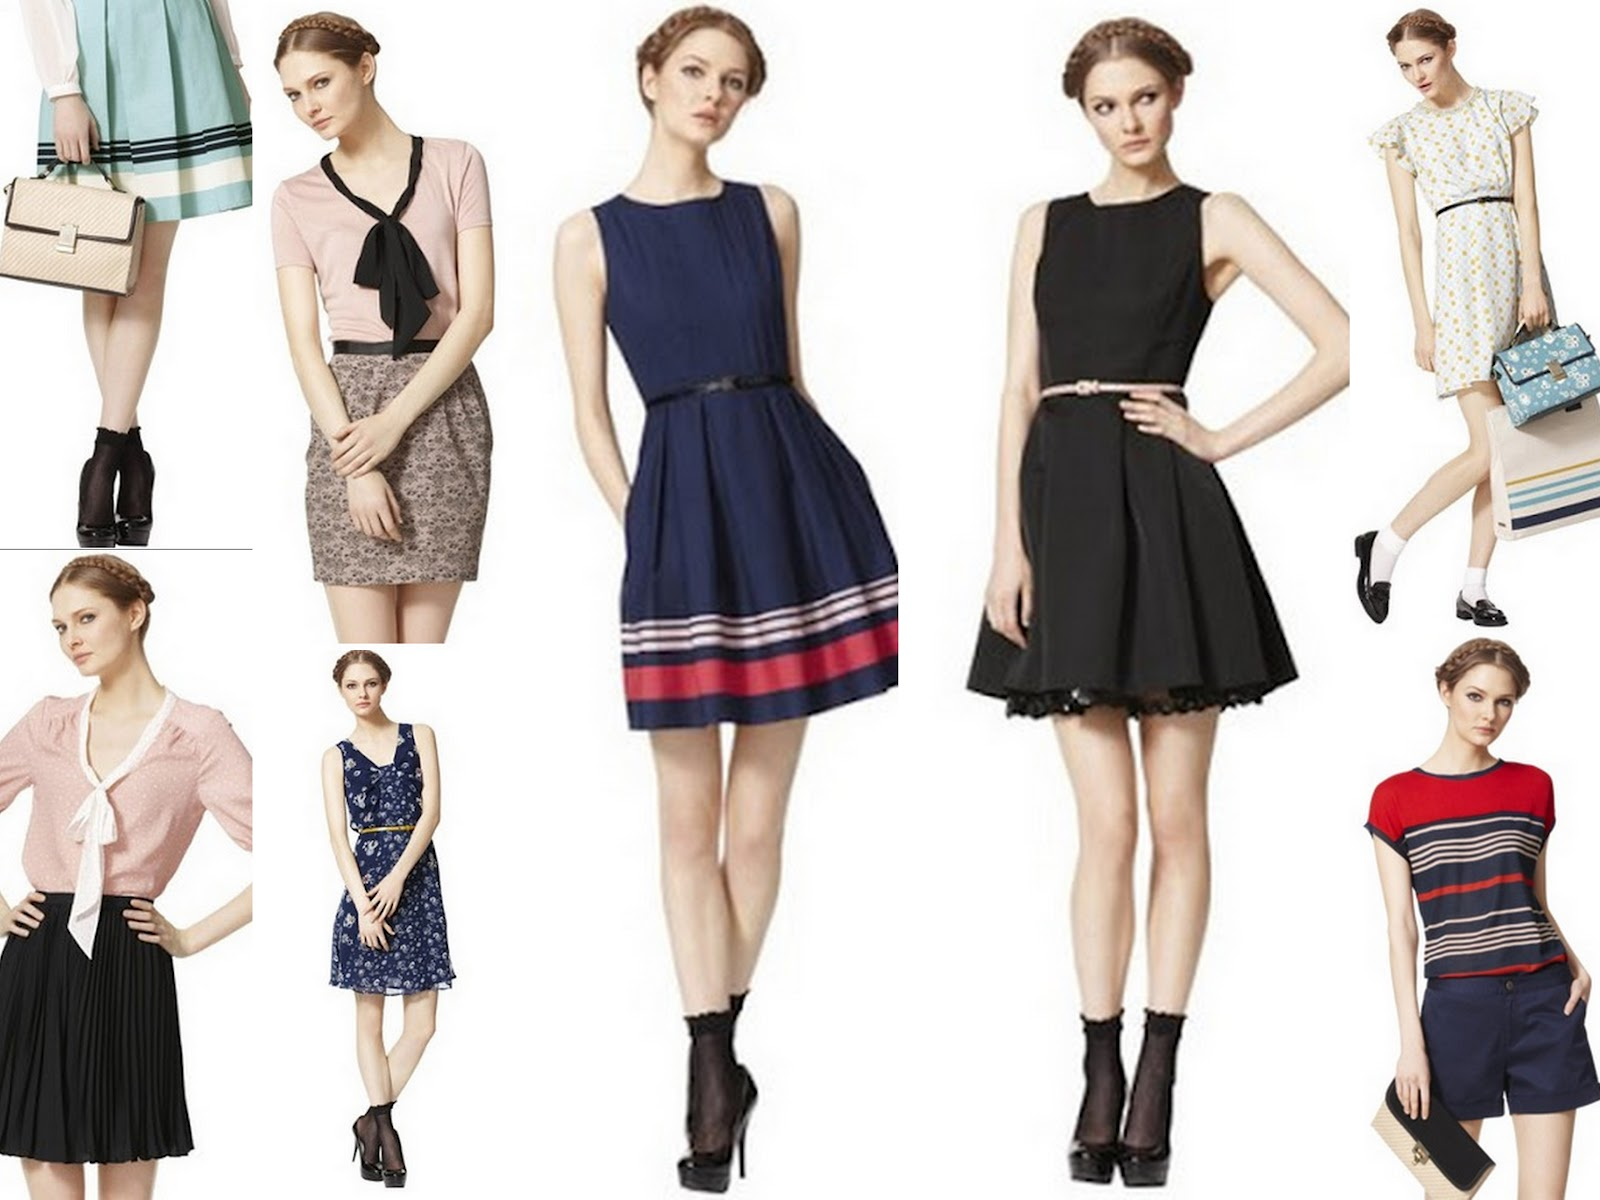 Paper doll romance jason wu for target jason wu for target ombrellifo Images